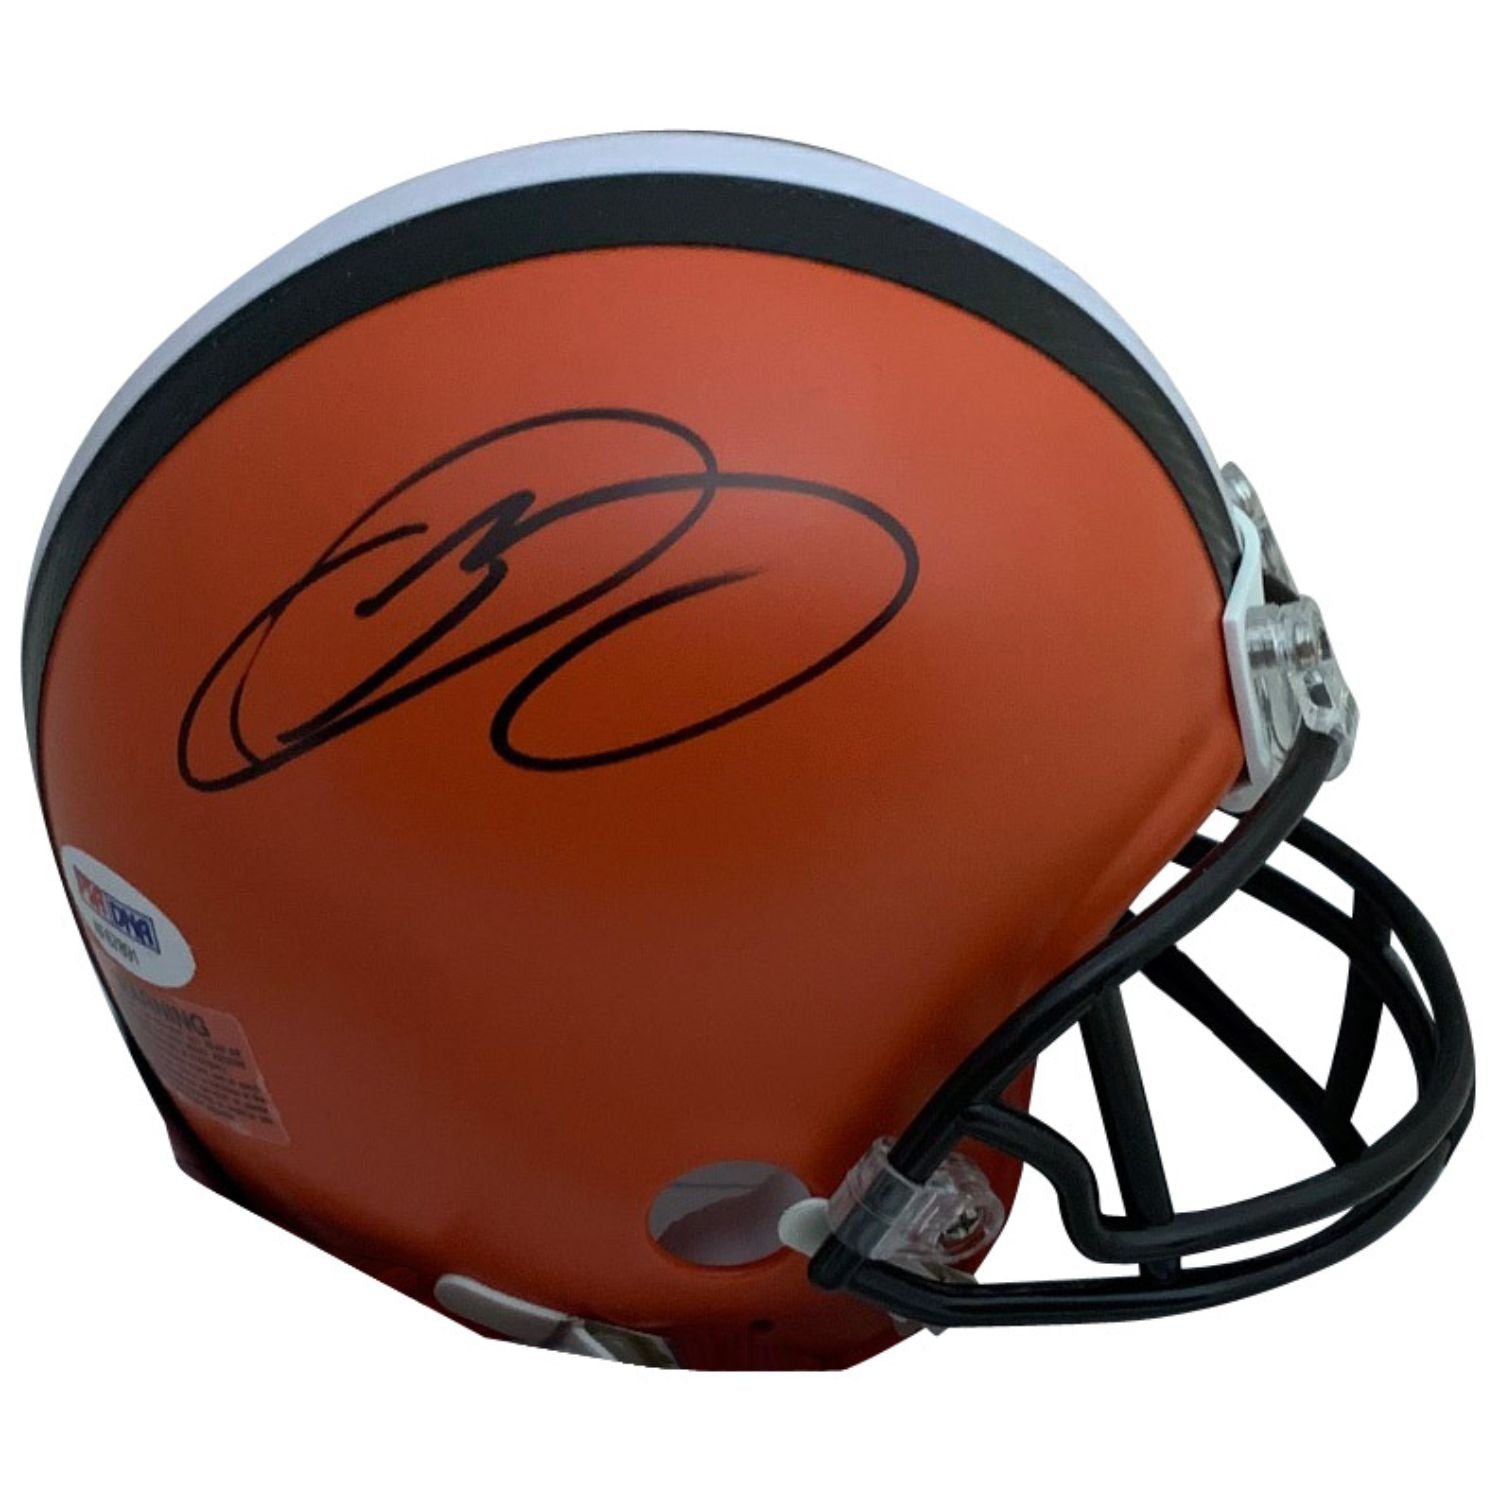 Odell Beckham Jr Autographed Cleveland Browns Signed NFL Football Mini Helmet PSA DNA COA-Powers Sports Memorabilia